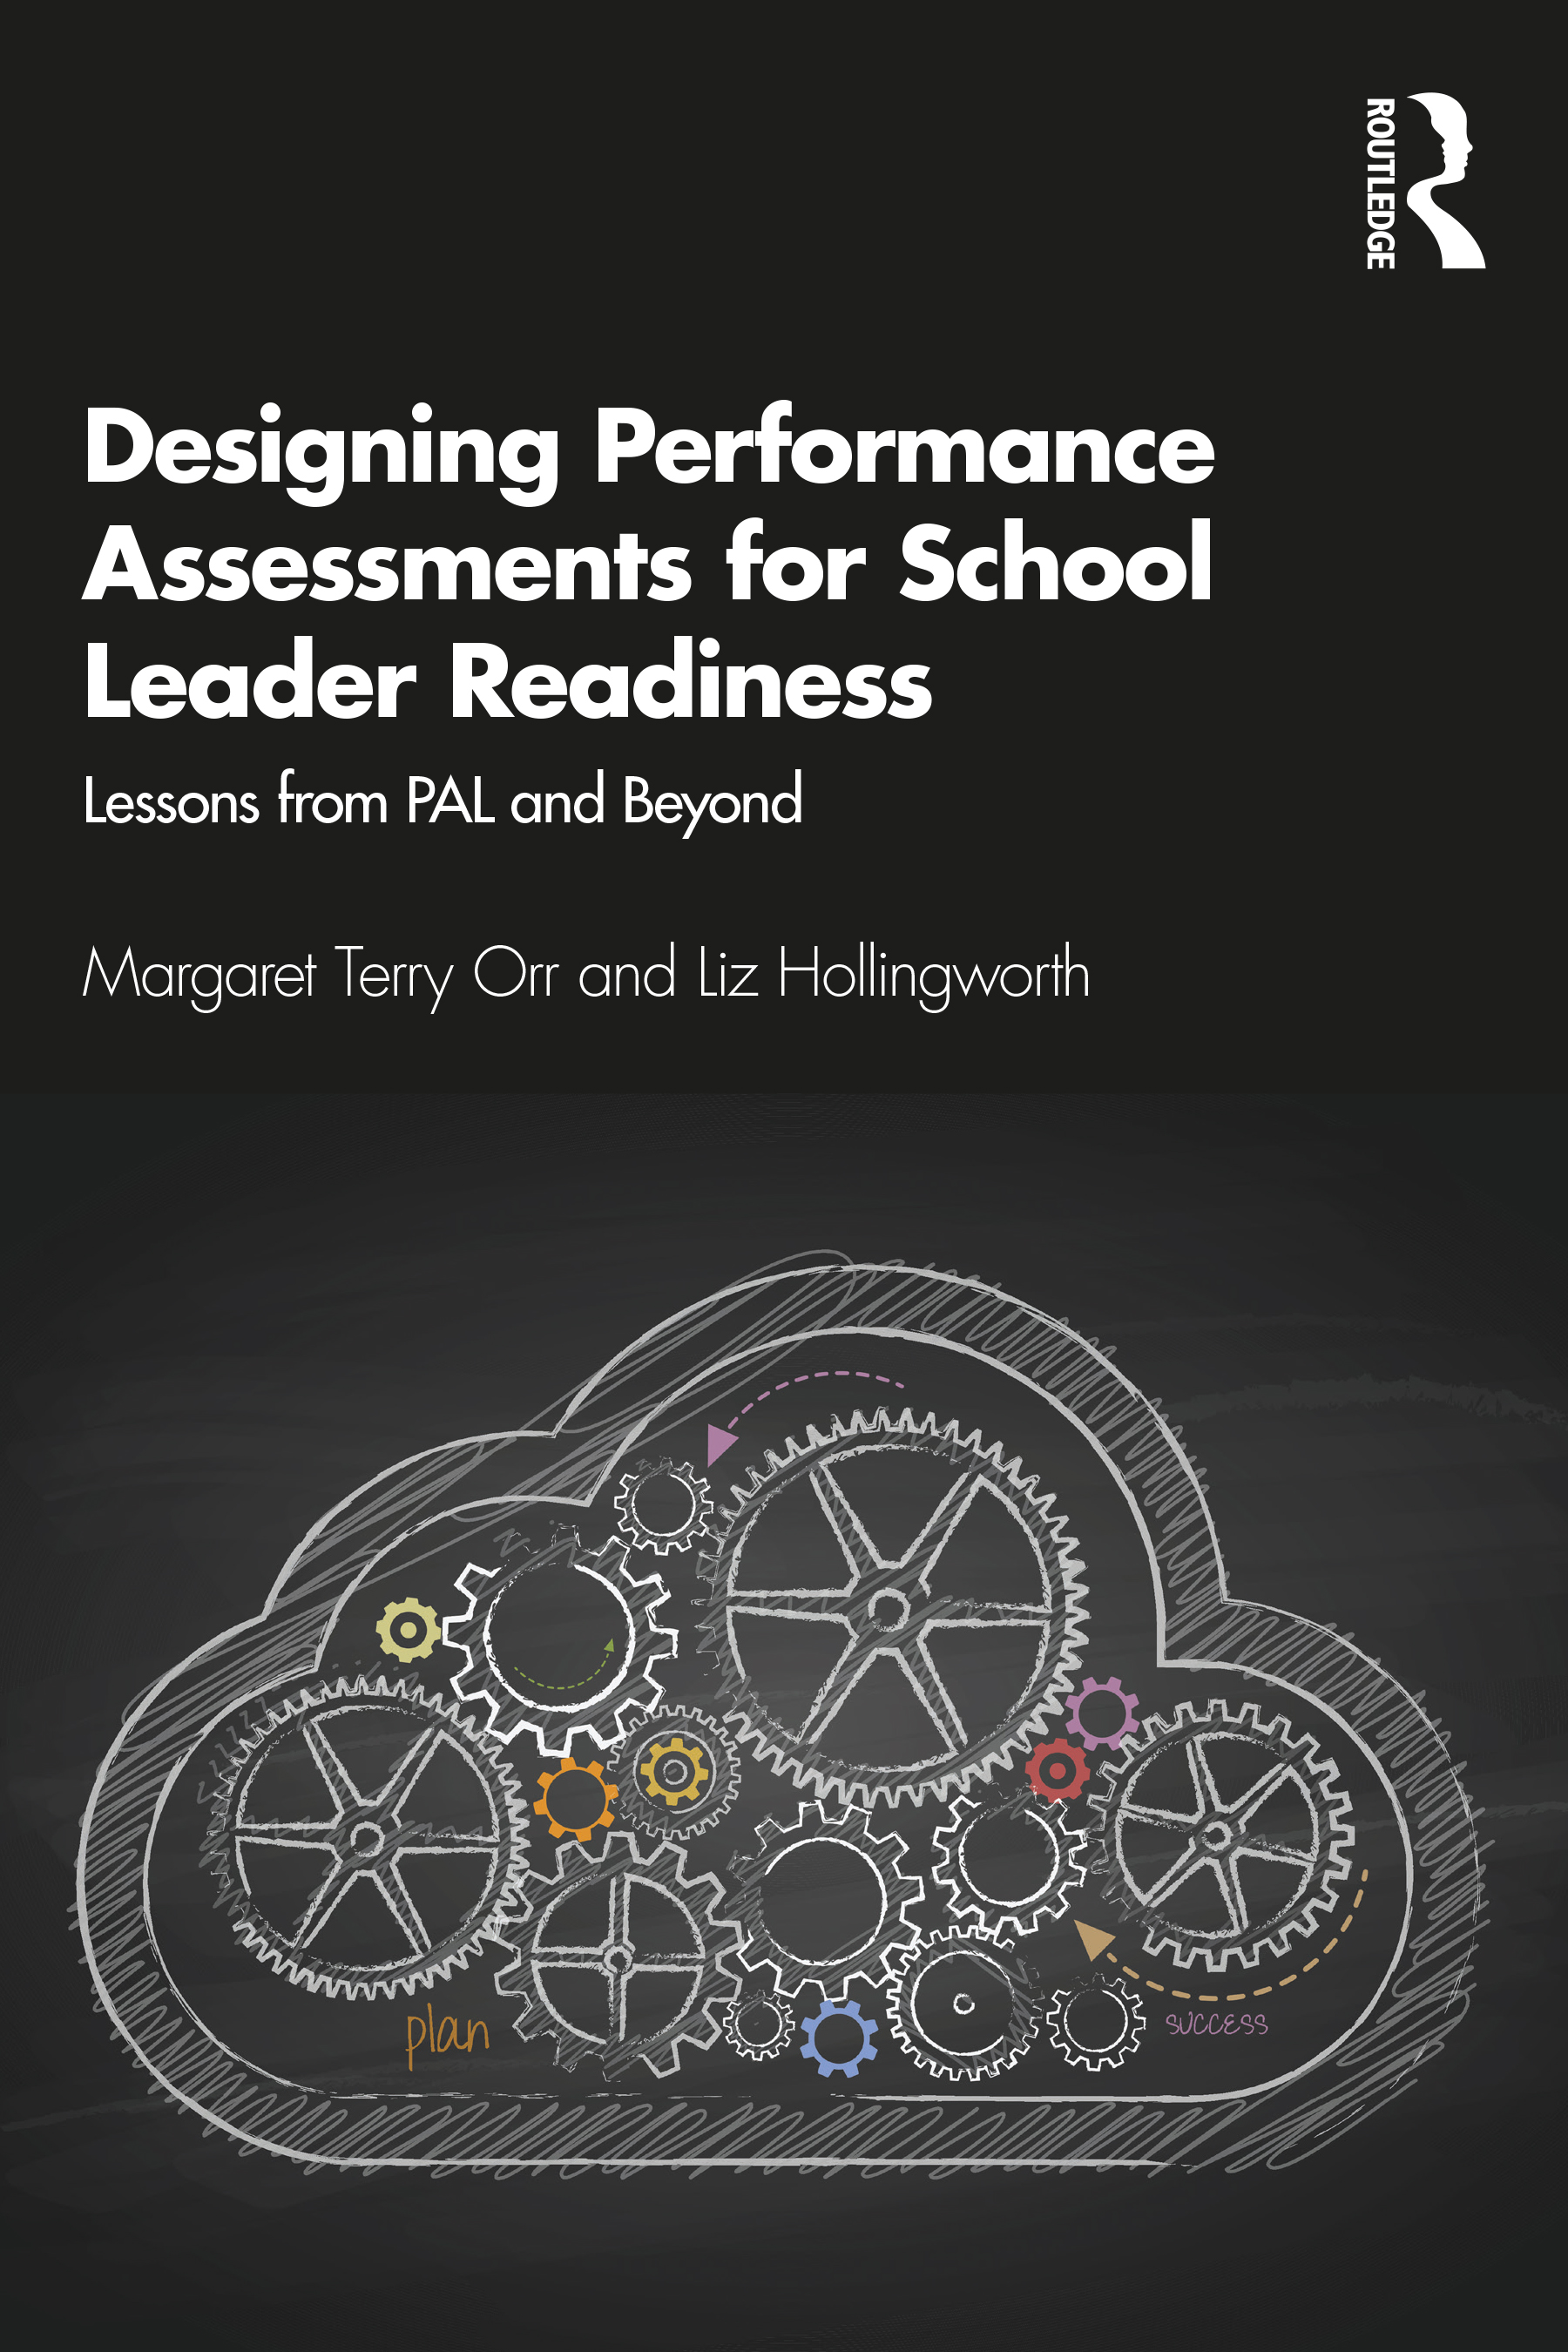 Designing Performance Assessments for School Leader Readiness: Lessons from PAL and Beyond book cover